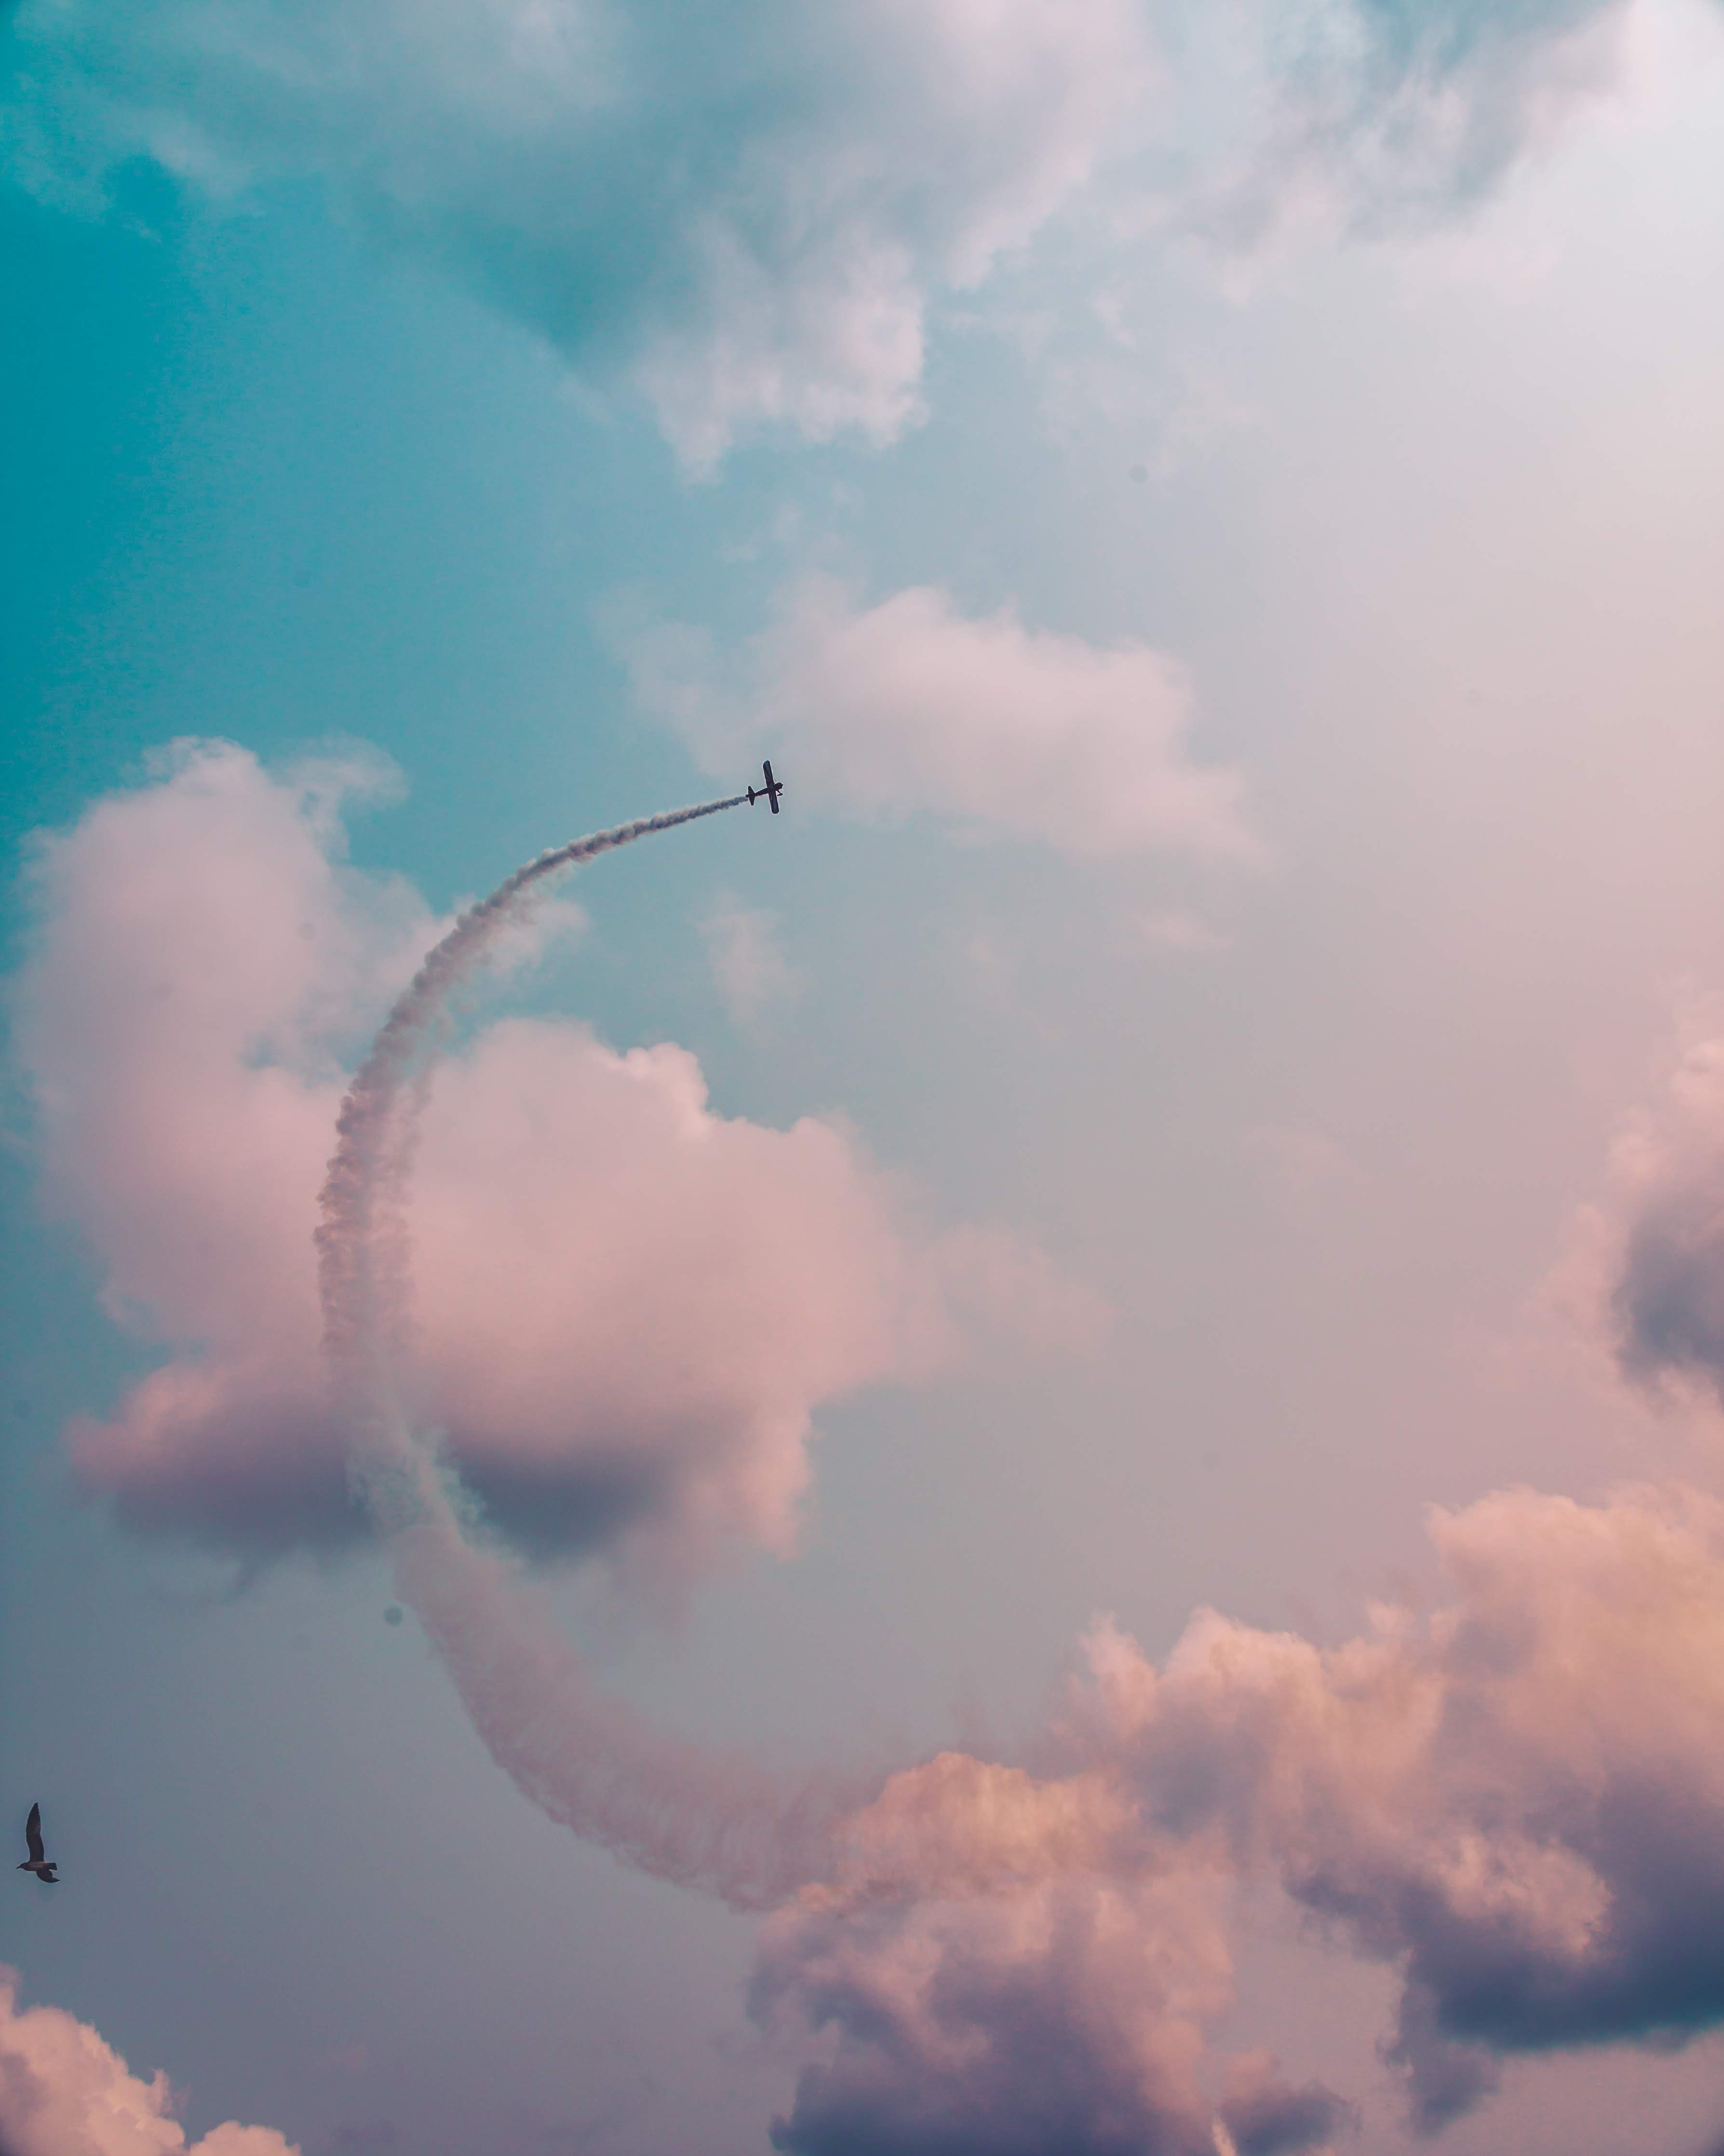 low angle photography of plane flying at high altitude with track of smoke during daytime